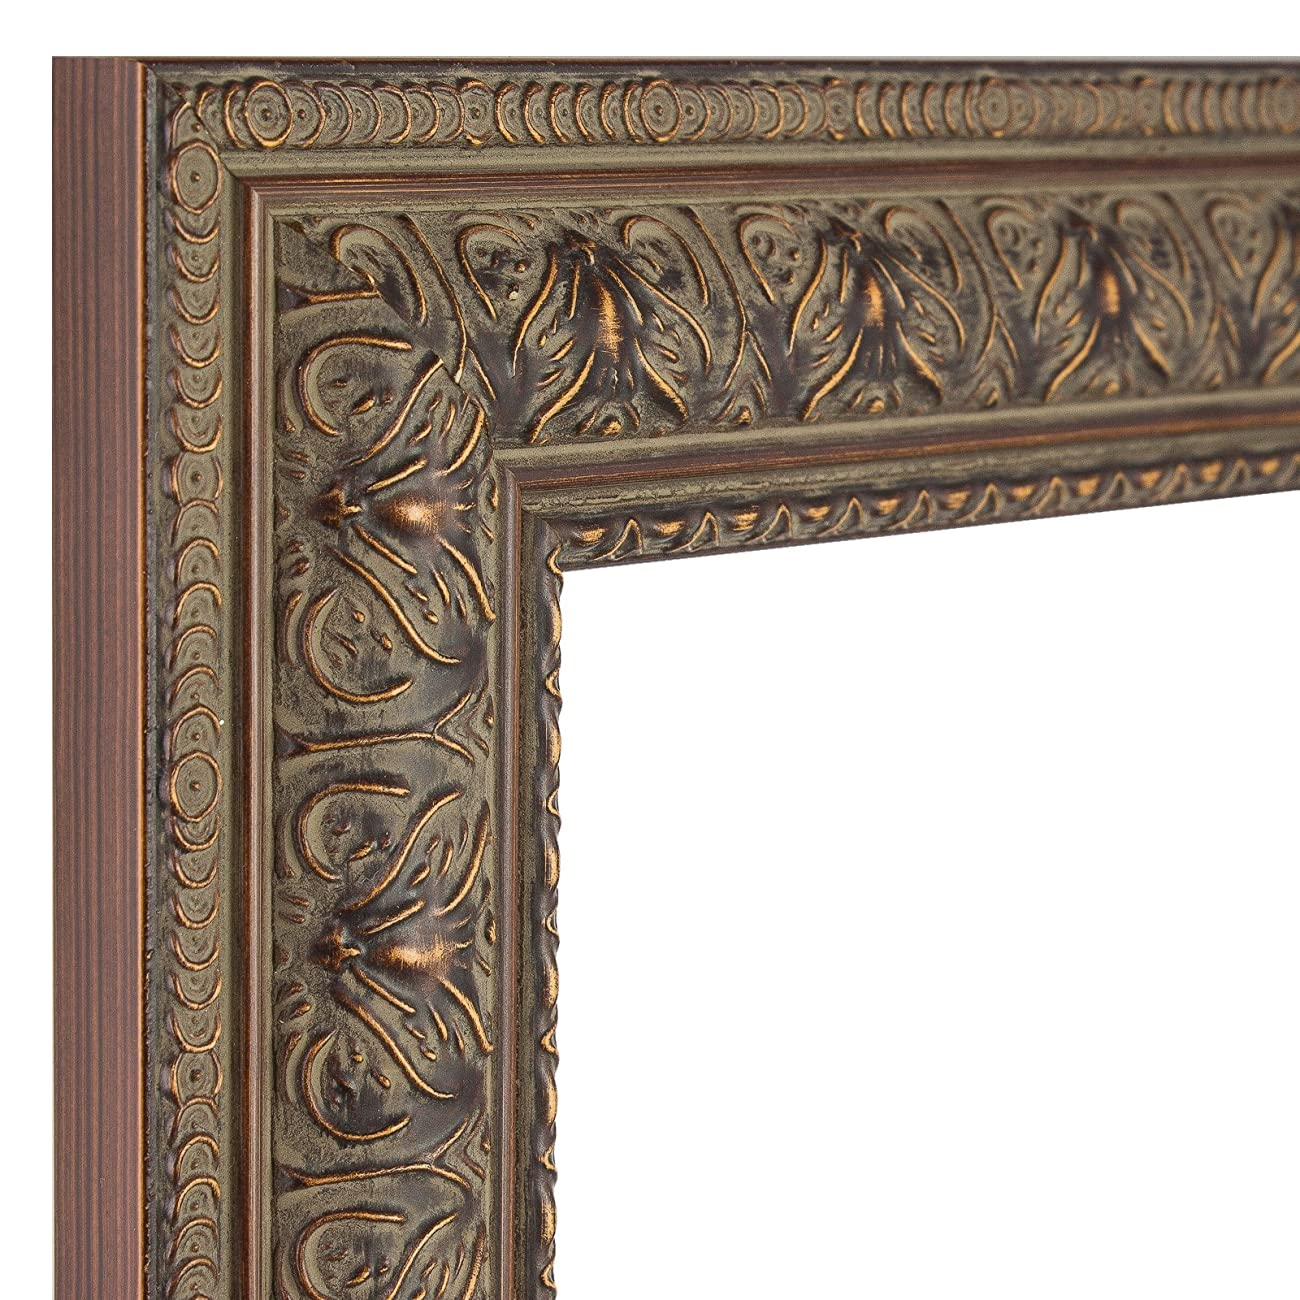 Craig Frames 9535 8 by 12-Inch Picture Frame, Antique Ornate Finish, 1.5-Inch Wide, Aged Mahogany 1